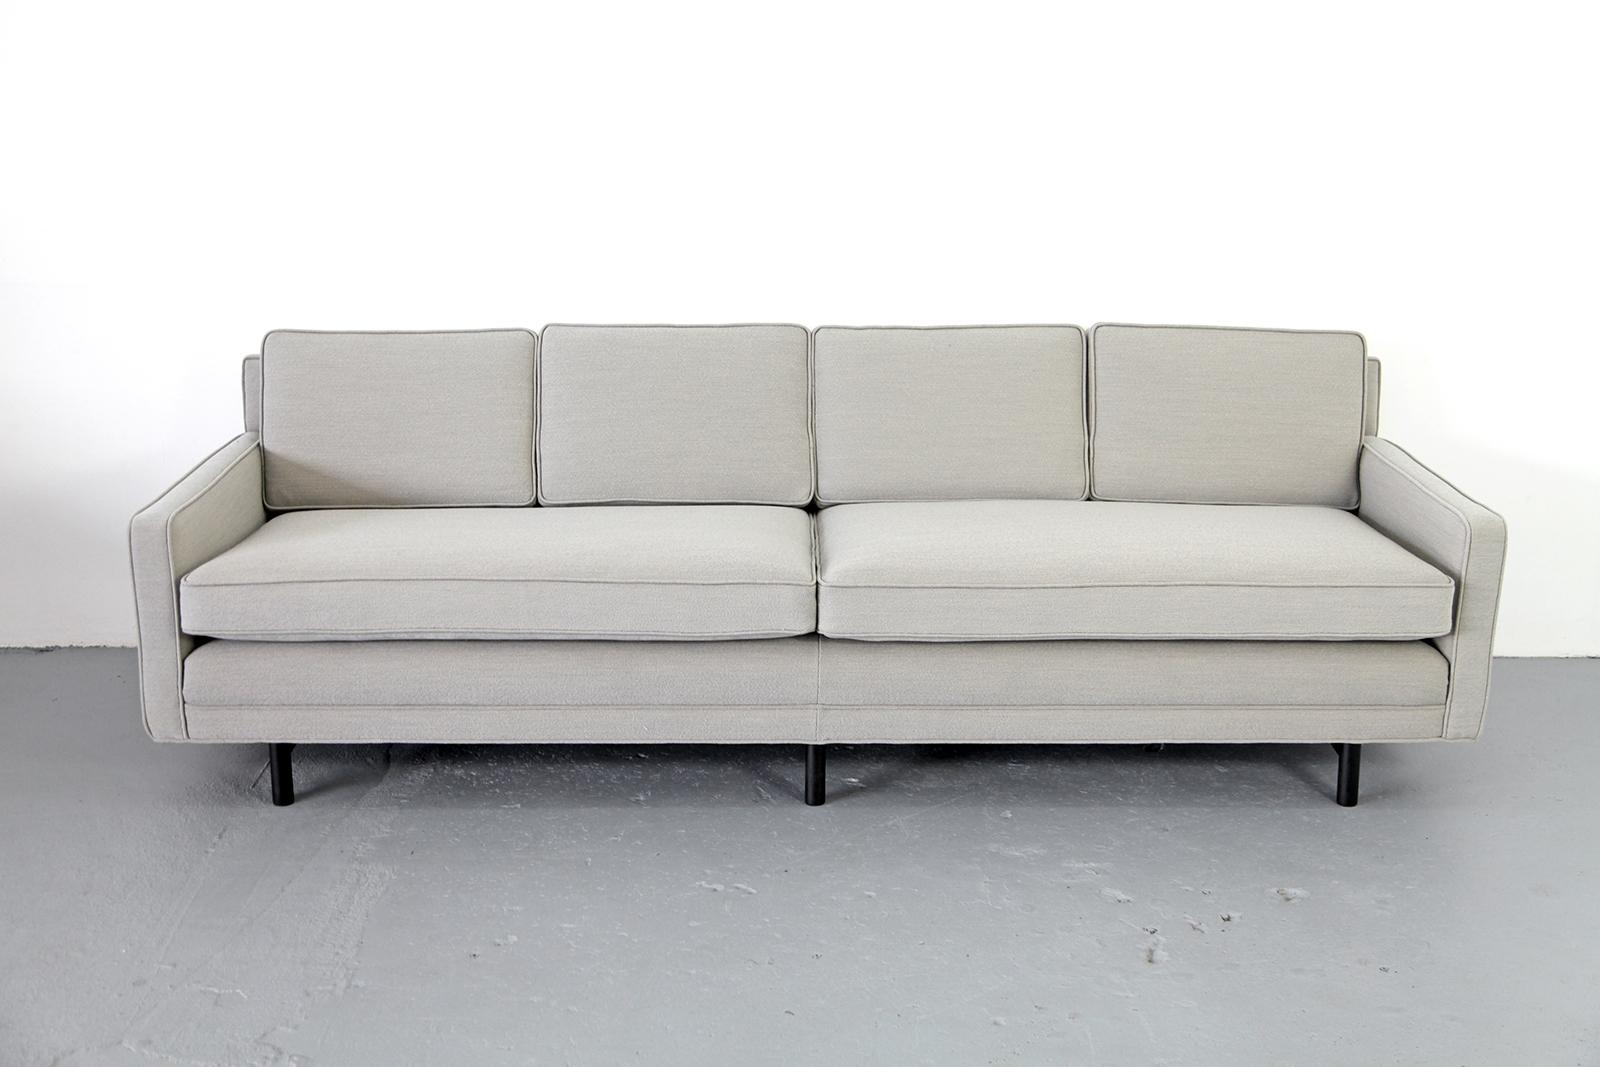 4-Seater Sofapaul Mccobb For Directional For Sale At Pamono with regard to Four Seater Sofas